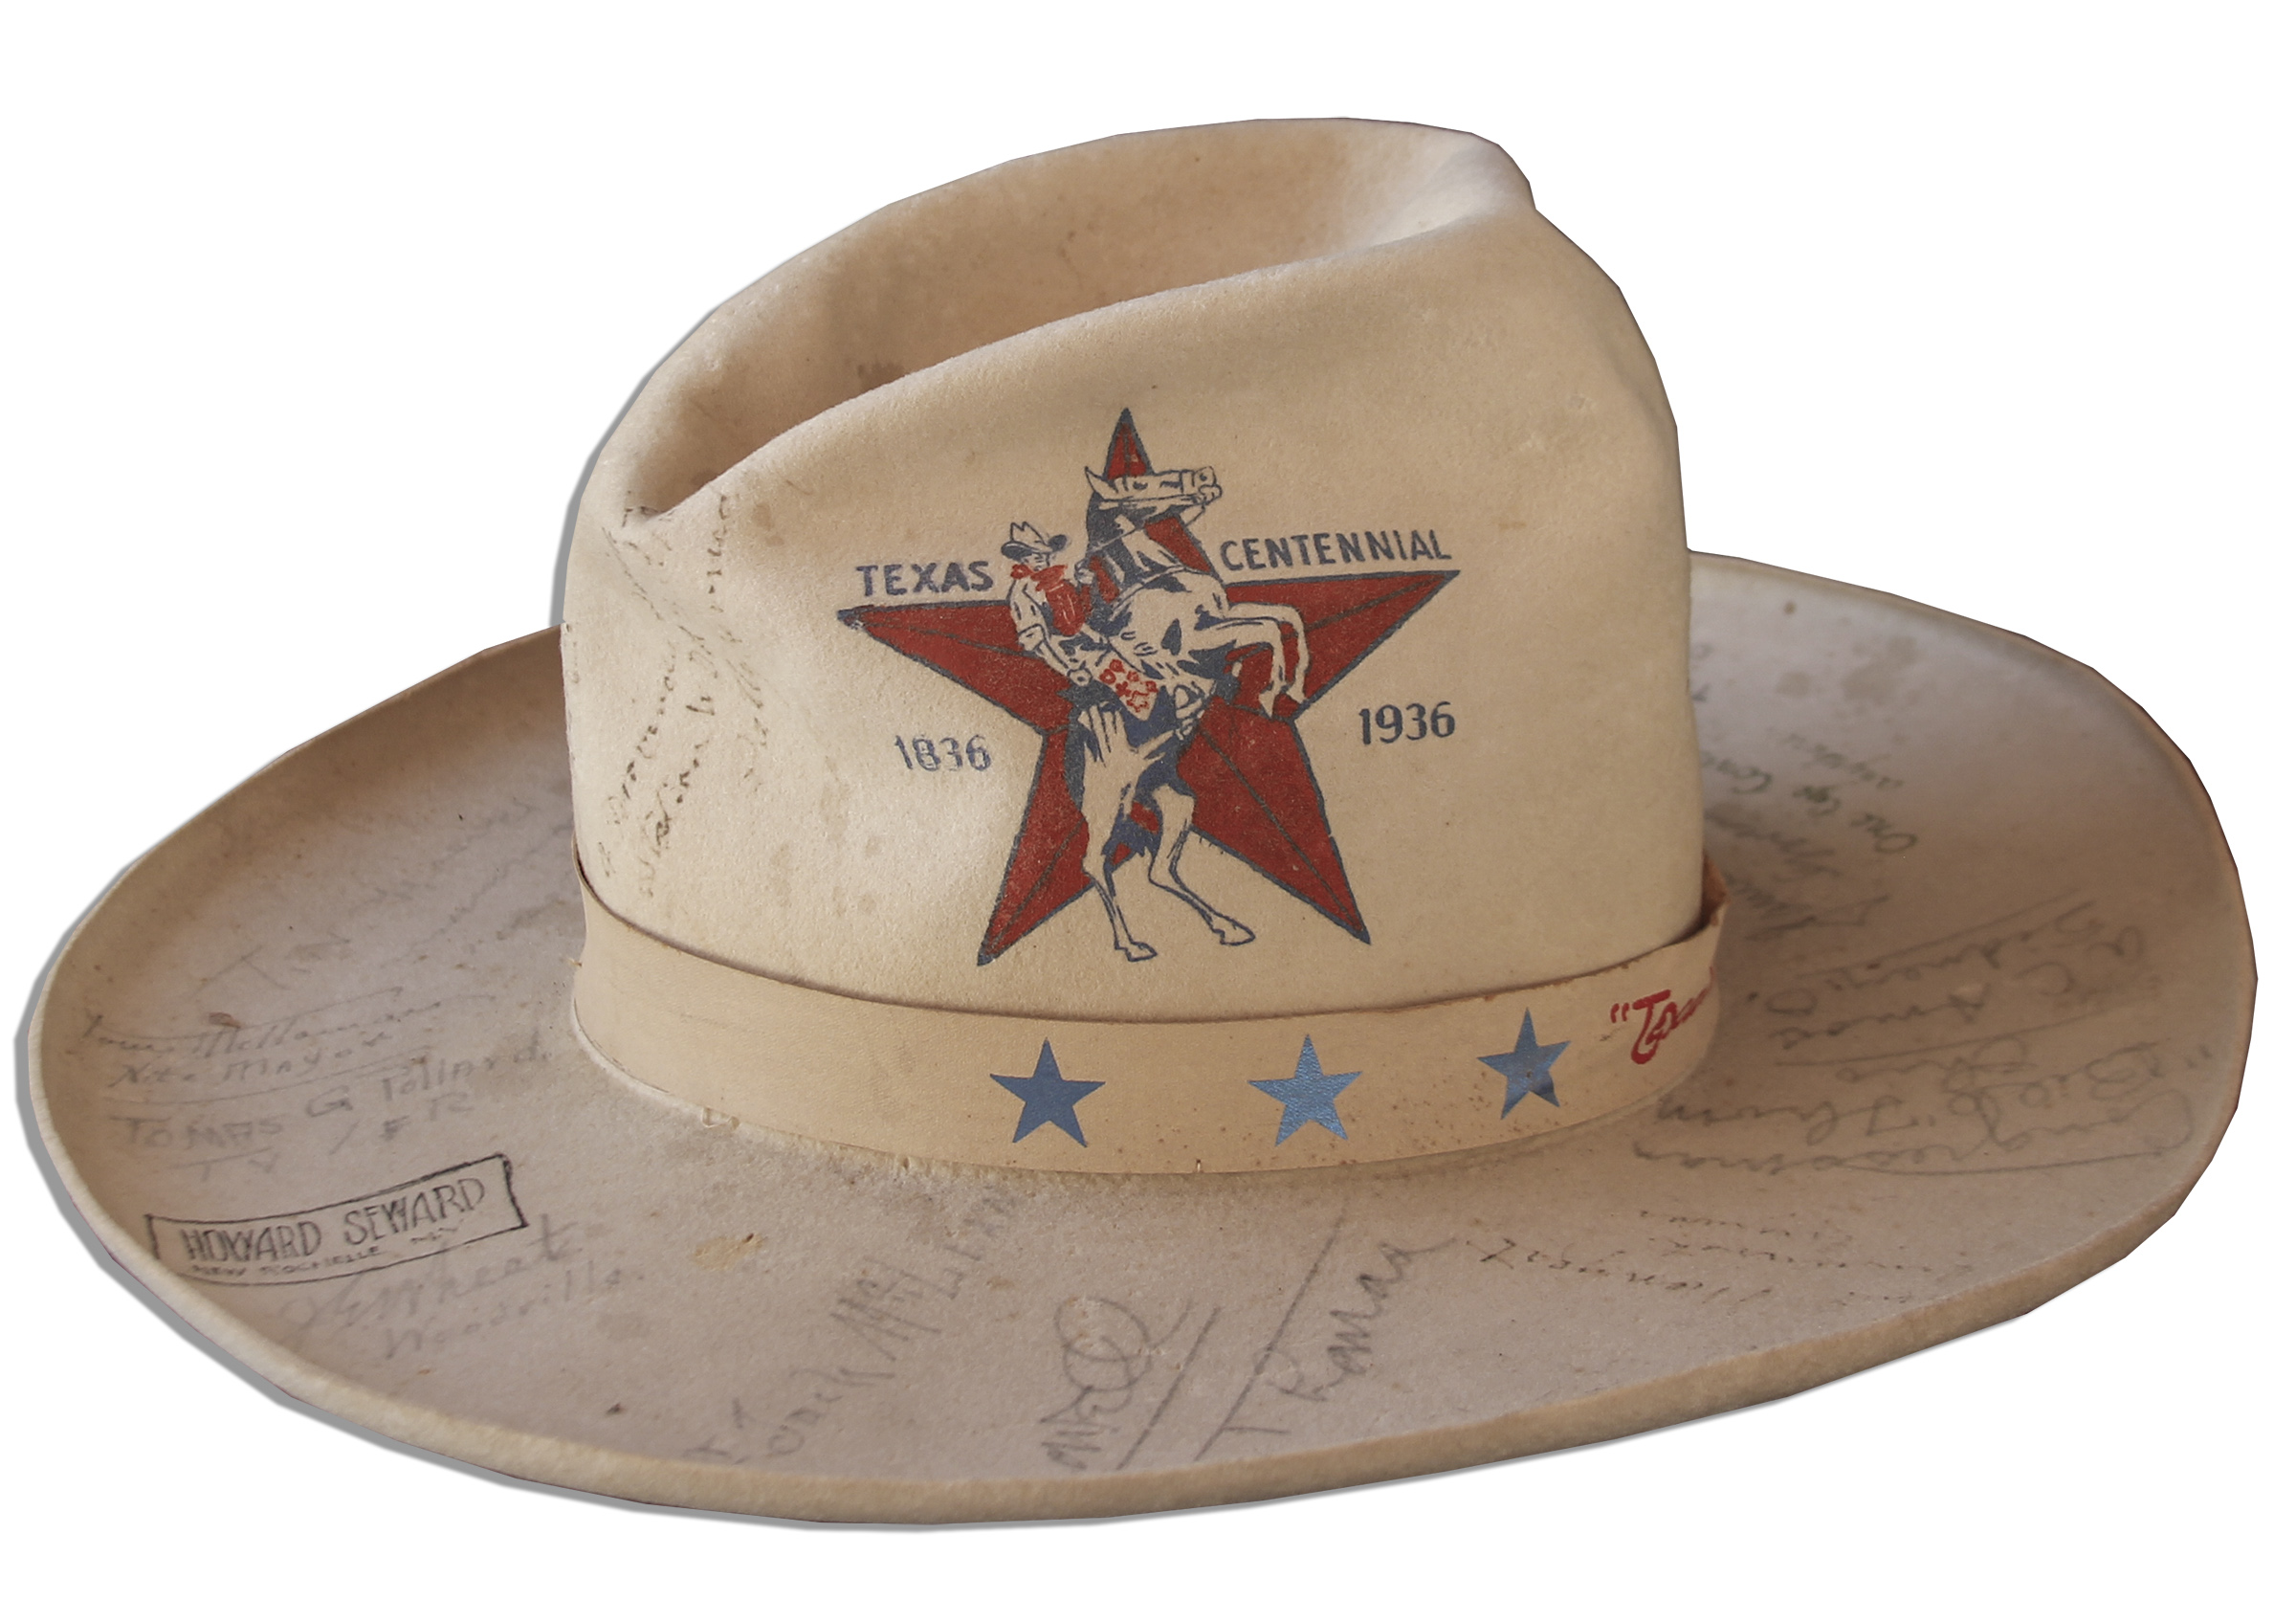 ... Texas Centennial Hat Signed by a Plethora of Democratic Politicians    Other Public Figures - ... 61bcac1cc2c